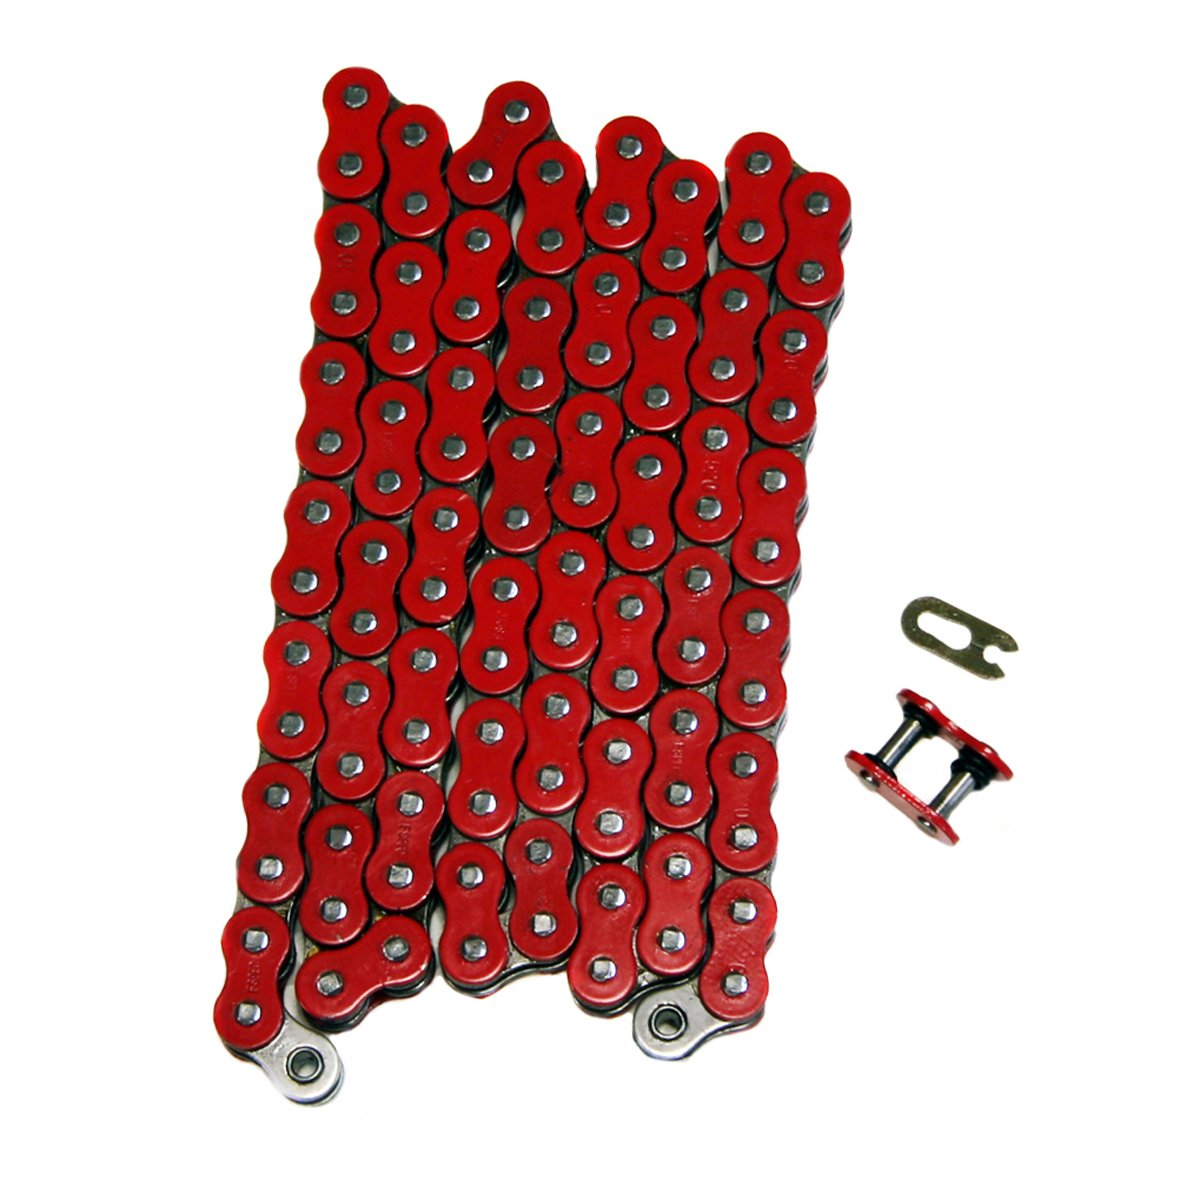 Red 520x80 O-Ring Drive Chain compatible with 2008-2009 Honda TRX700XX Sportrax Factory Spec